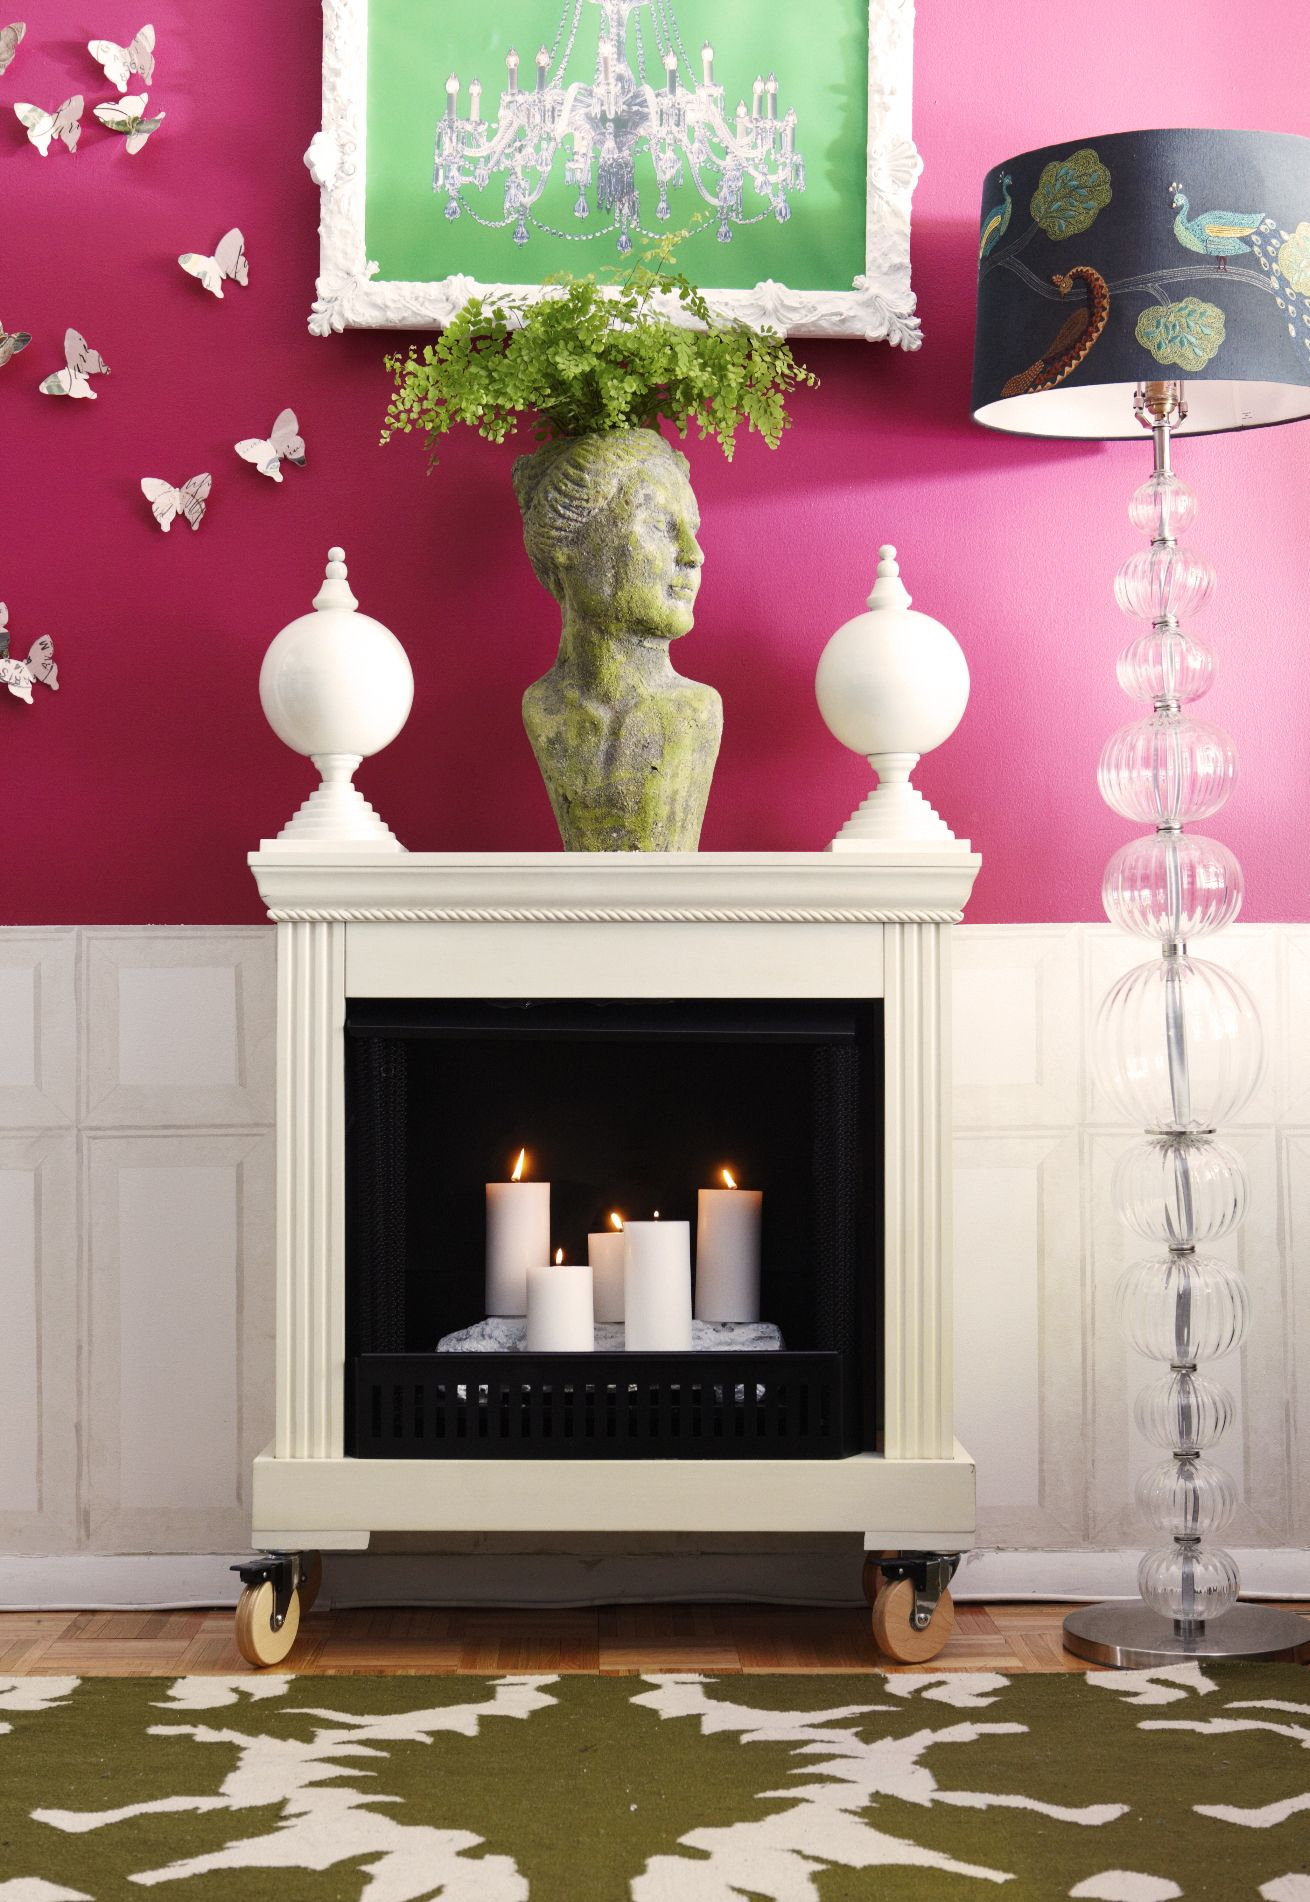 Fireplace on wheels for style on the go! | Nutshell Posh and ...